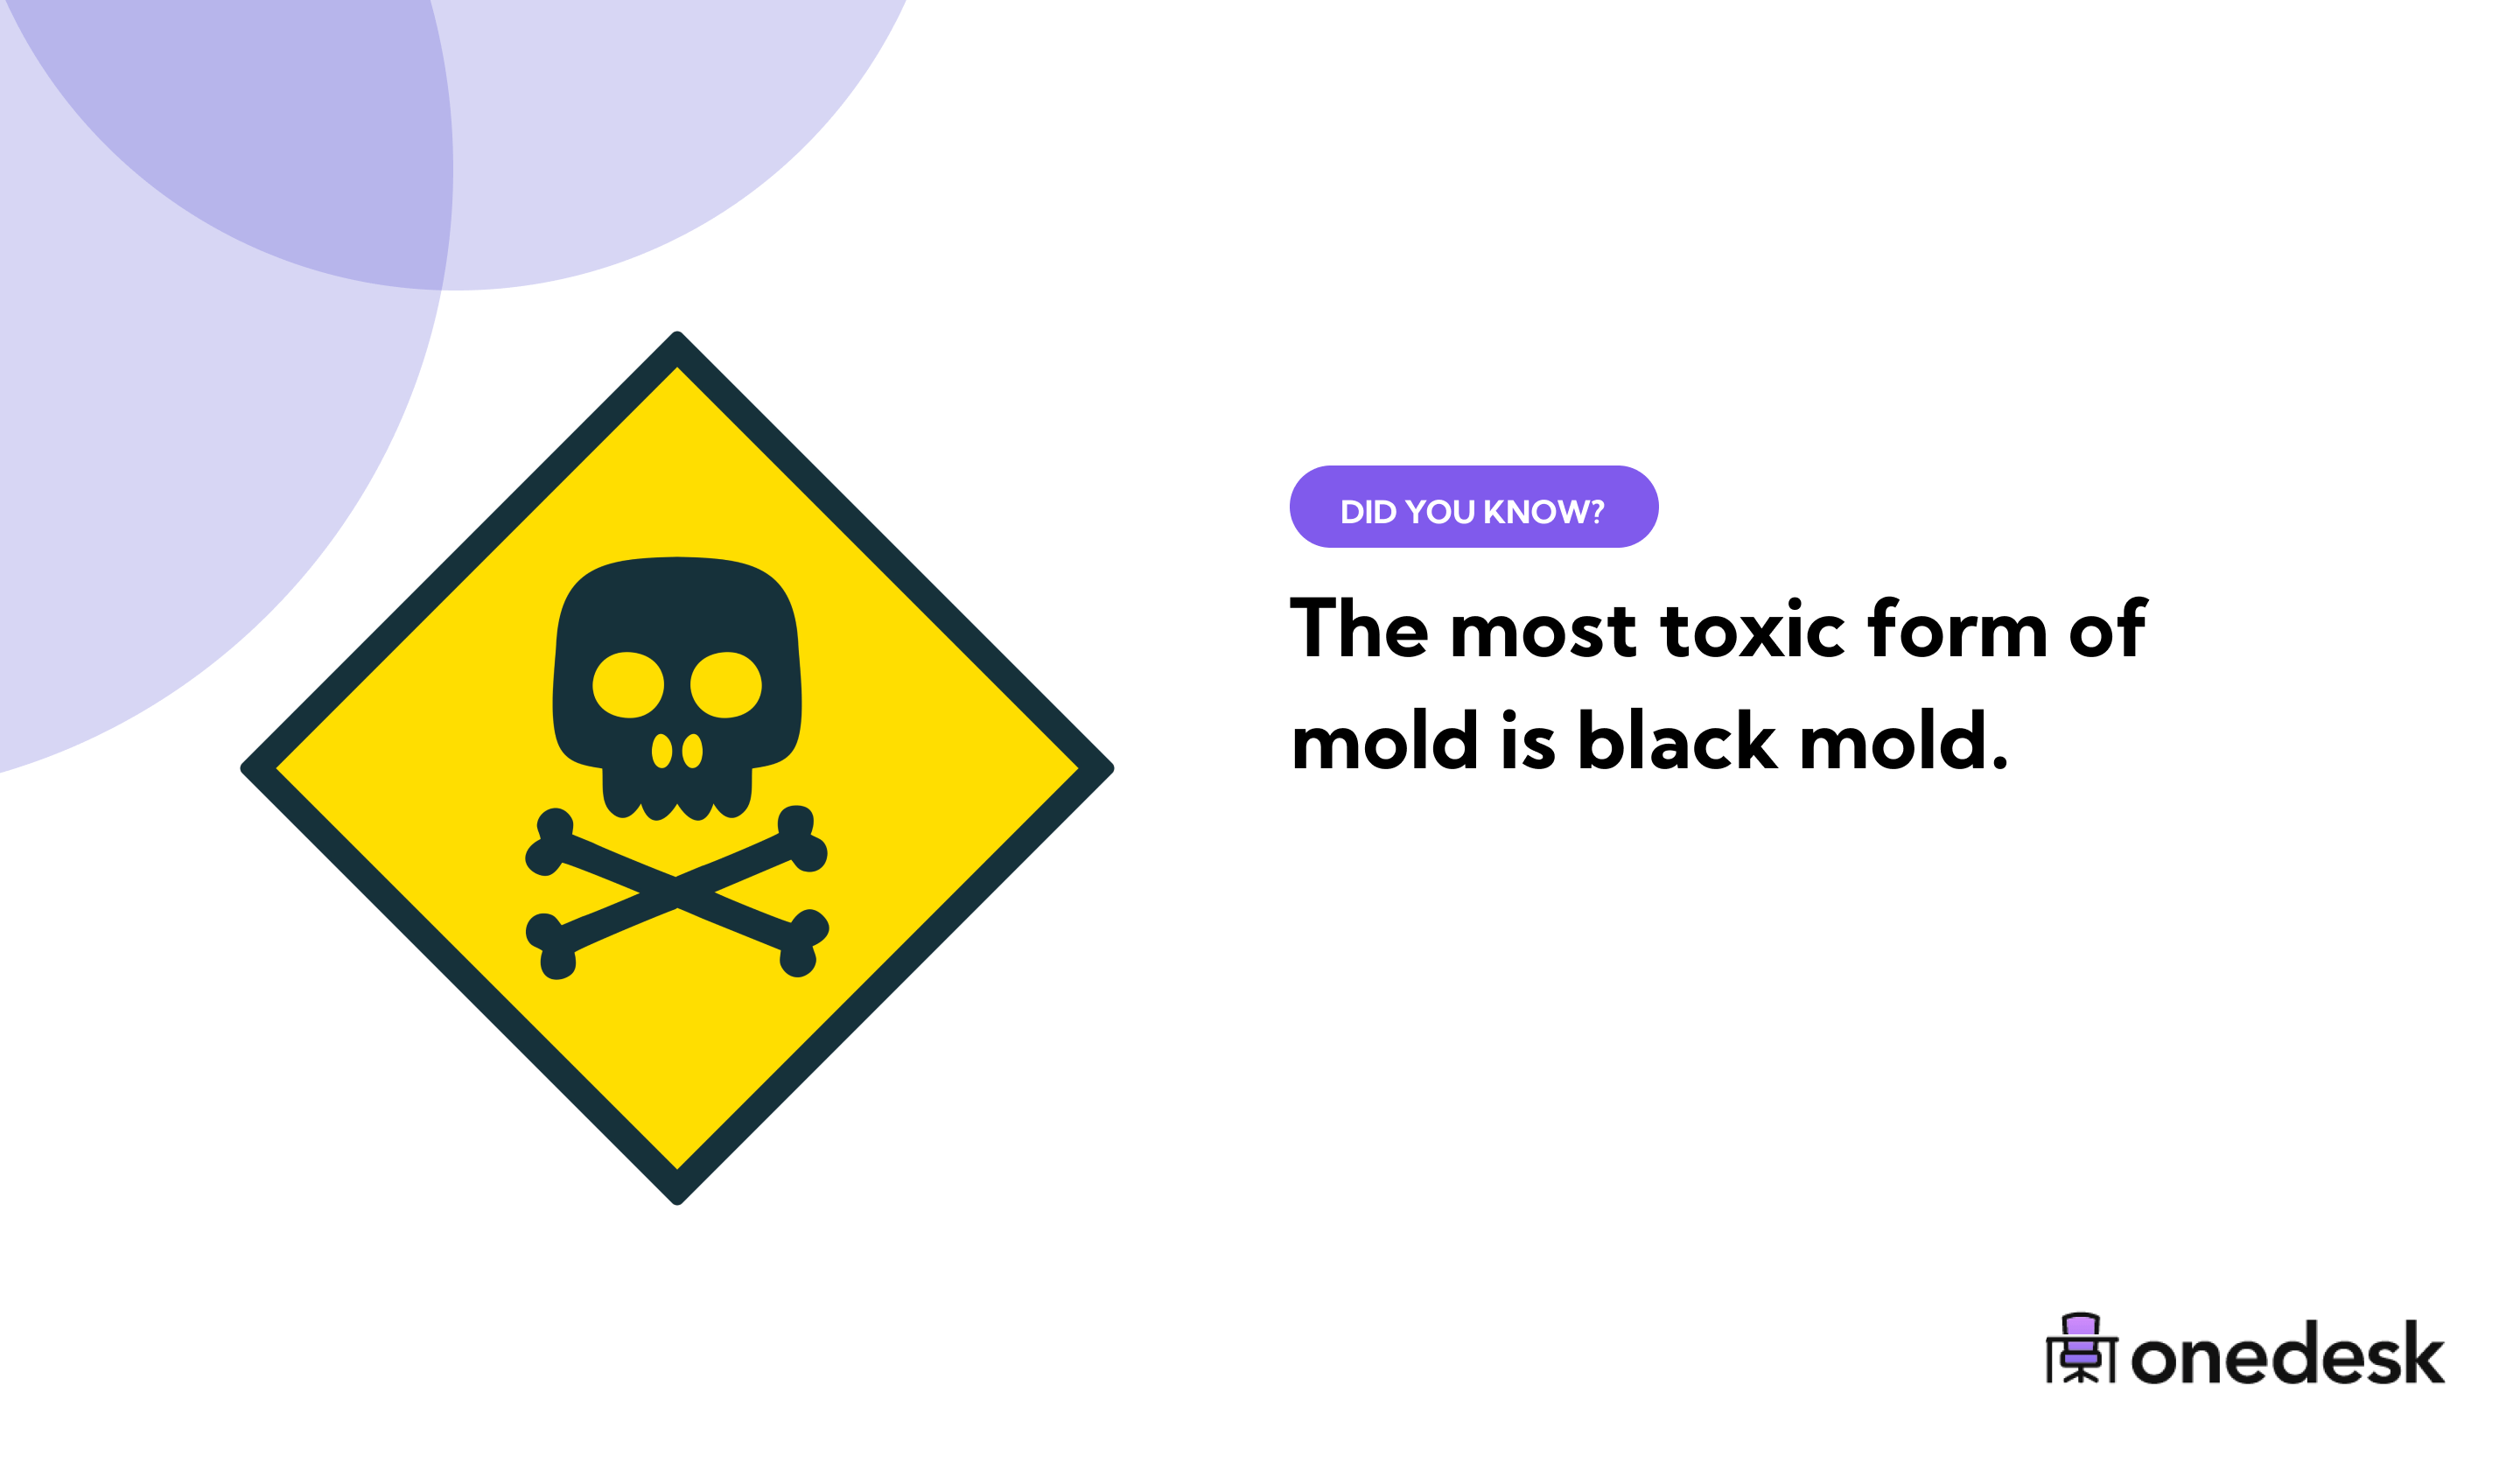 the most toxic form of mold is black mold